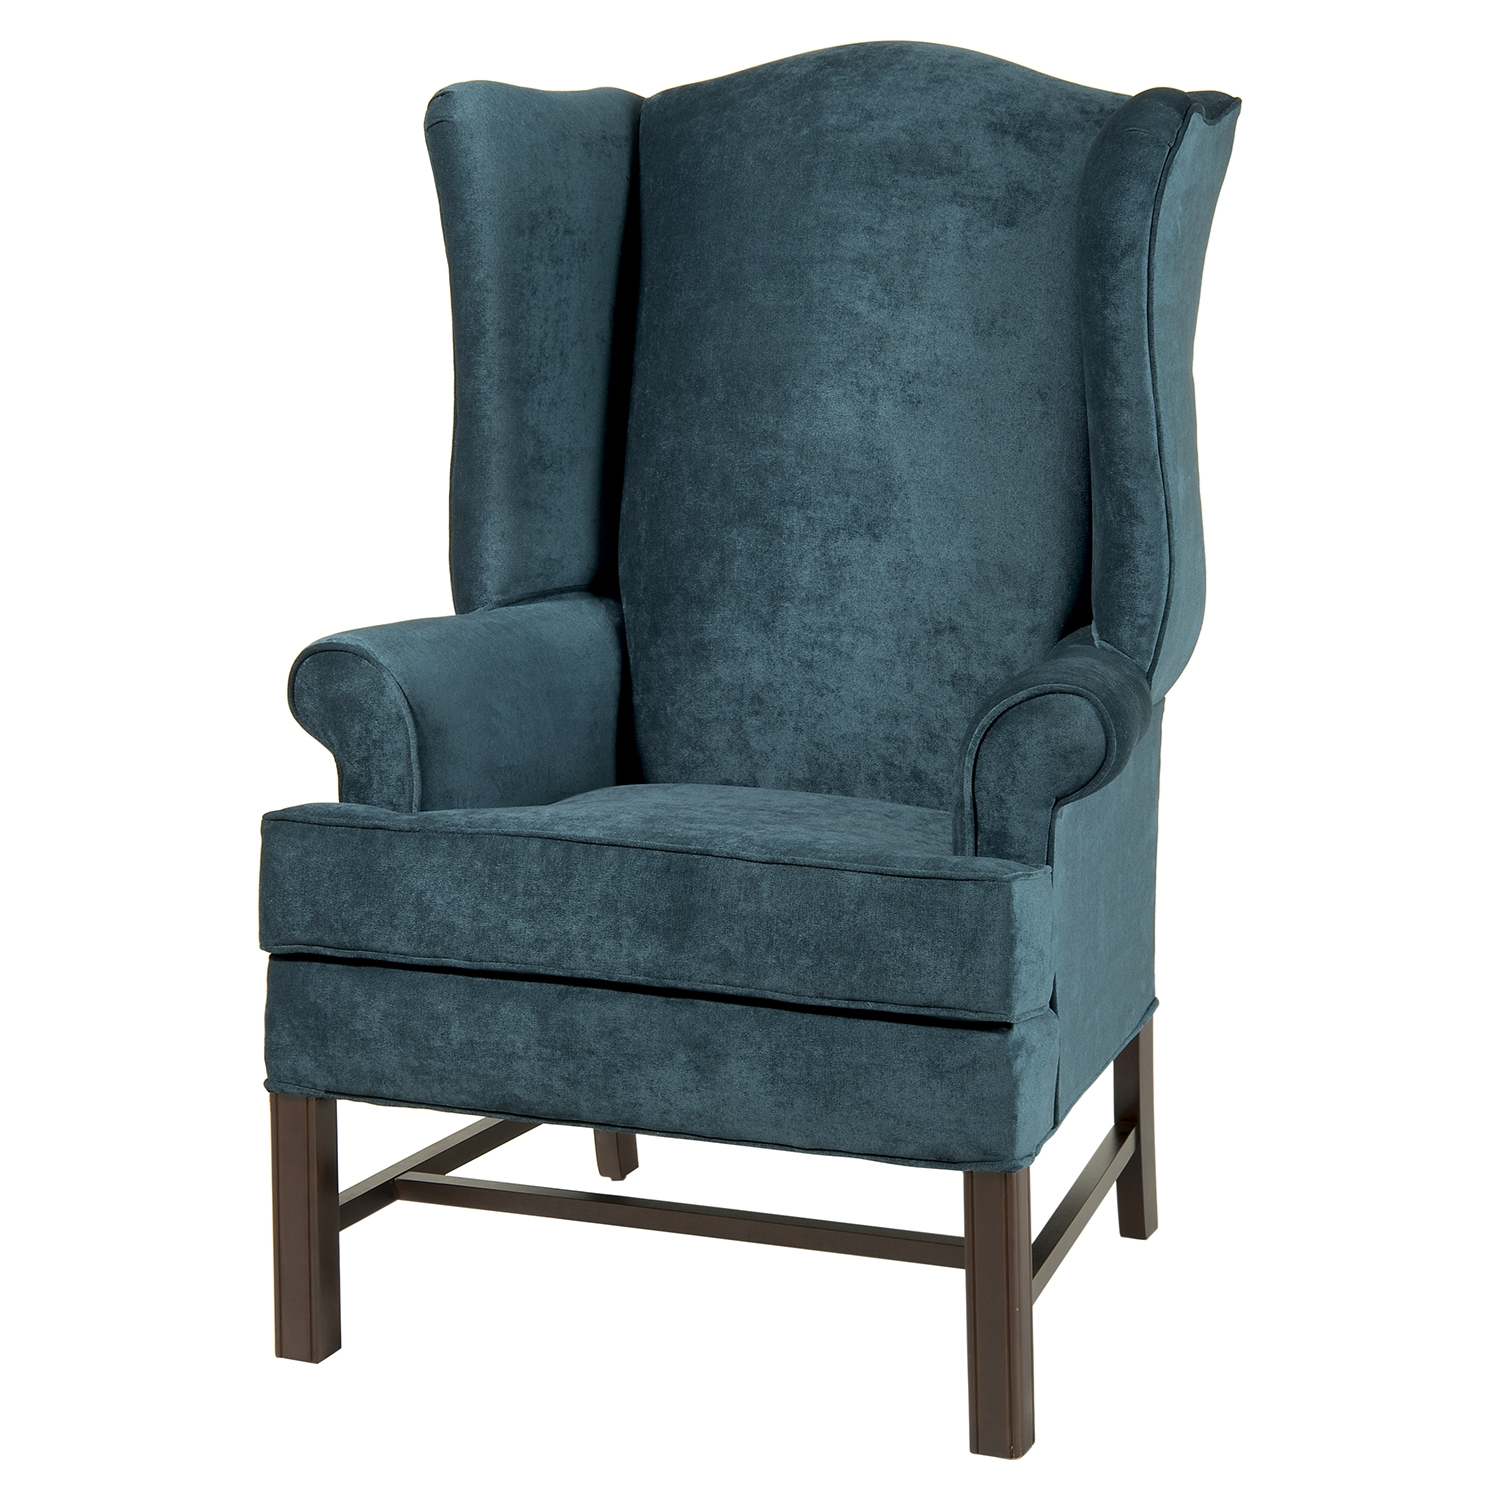 Chippendale Wing Chair - Ocean